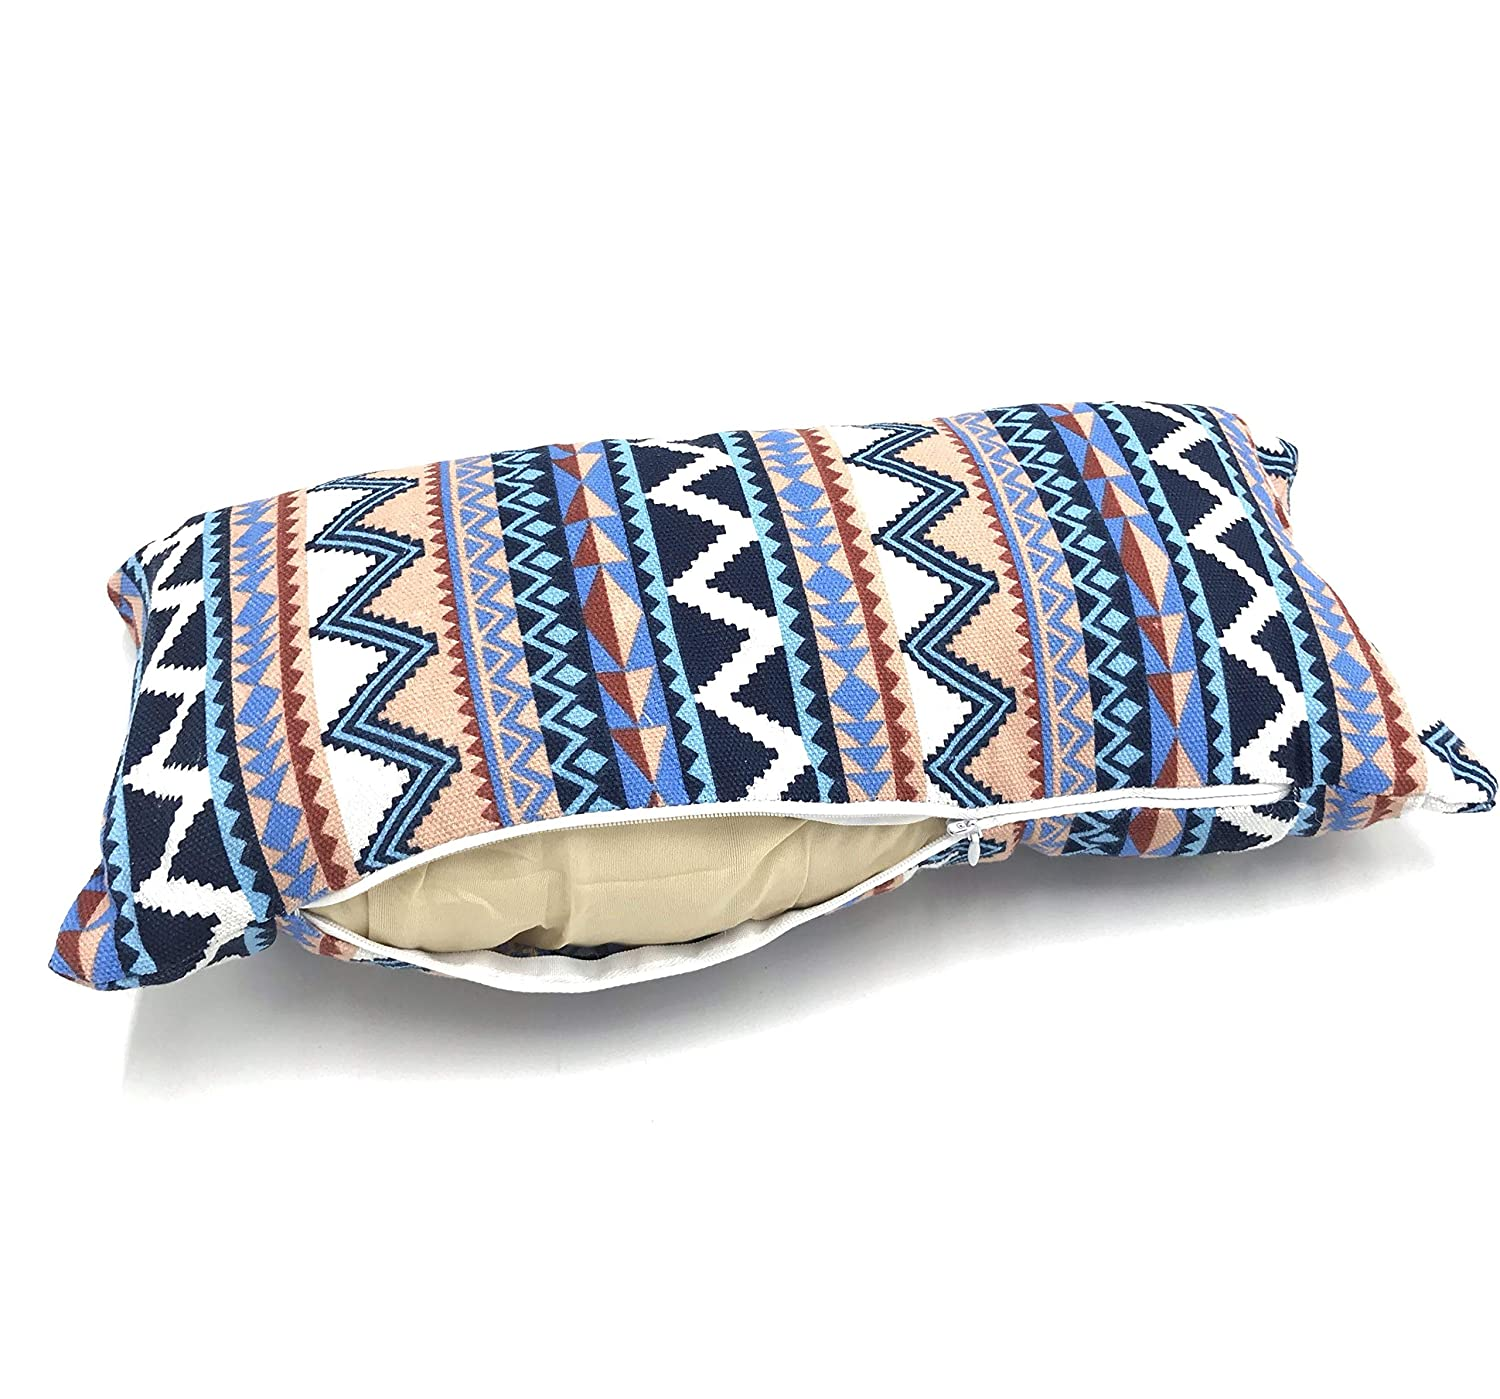 Foldable Washable Lightweight Backpacking for Everywhere A Yue Camping Pillow